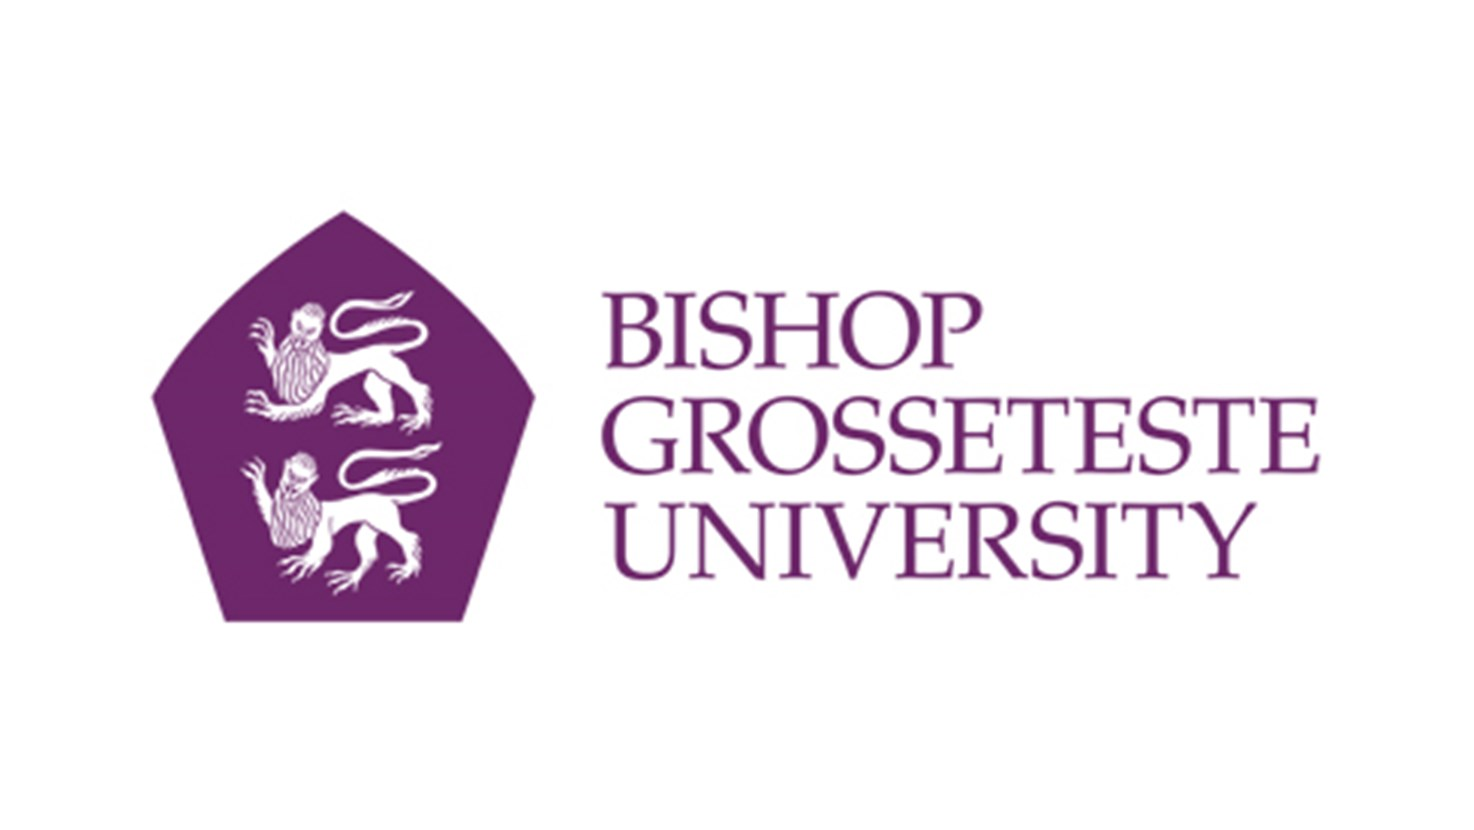 Meetings and events at Bishop Grosseteste University